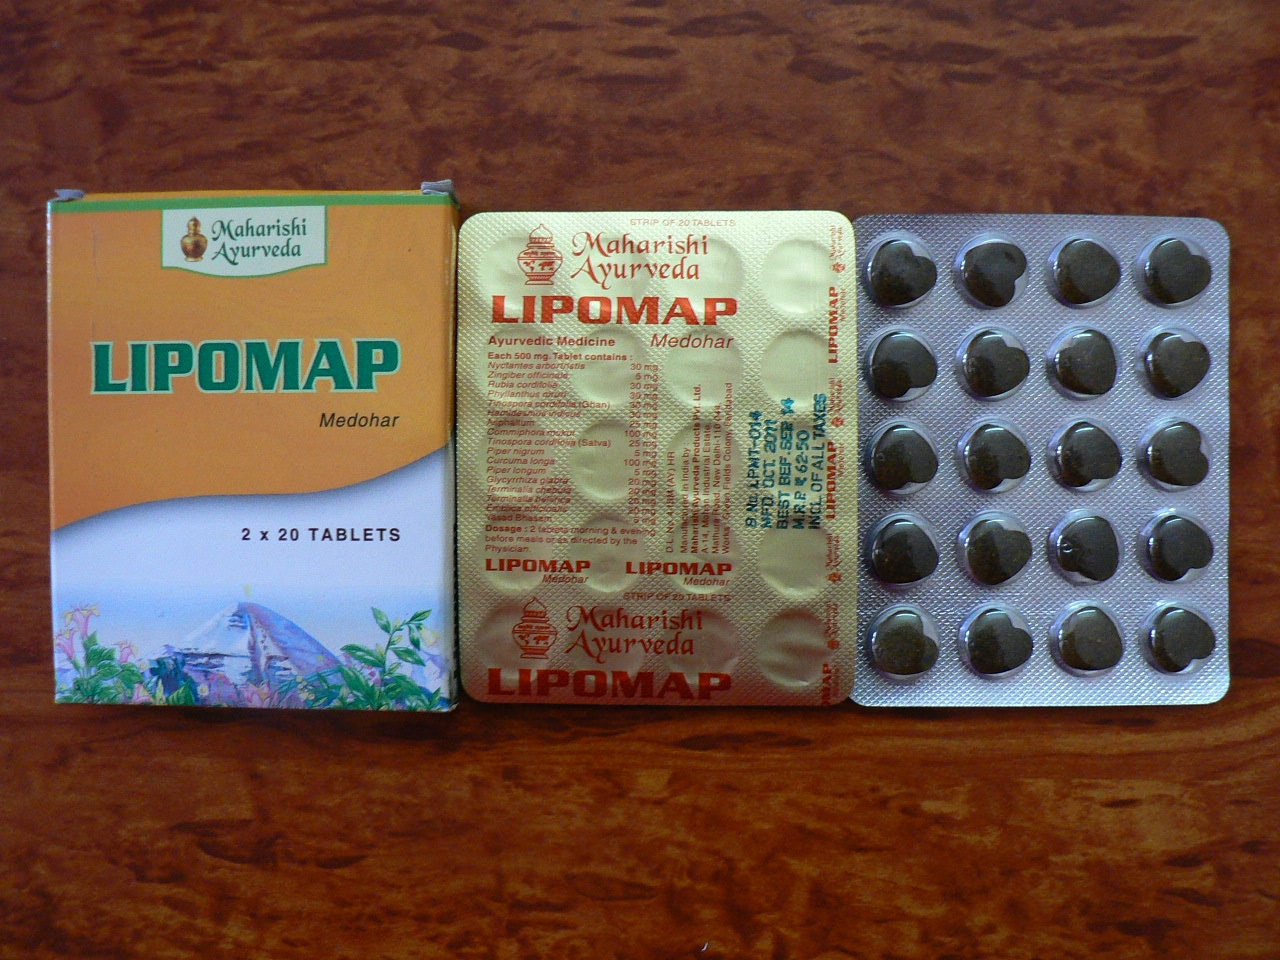 <b>MAHARISHI LIPOMAP</B><BR>AGA - 1 box of 2 x 20 tablets